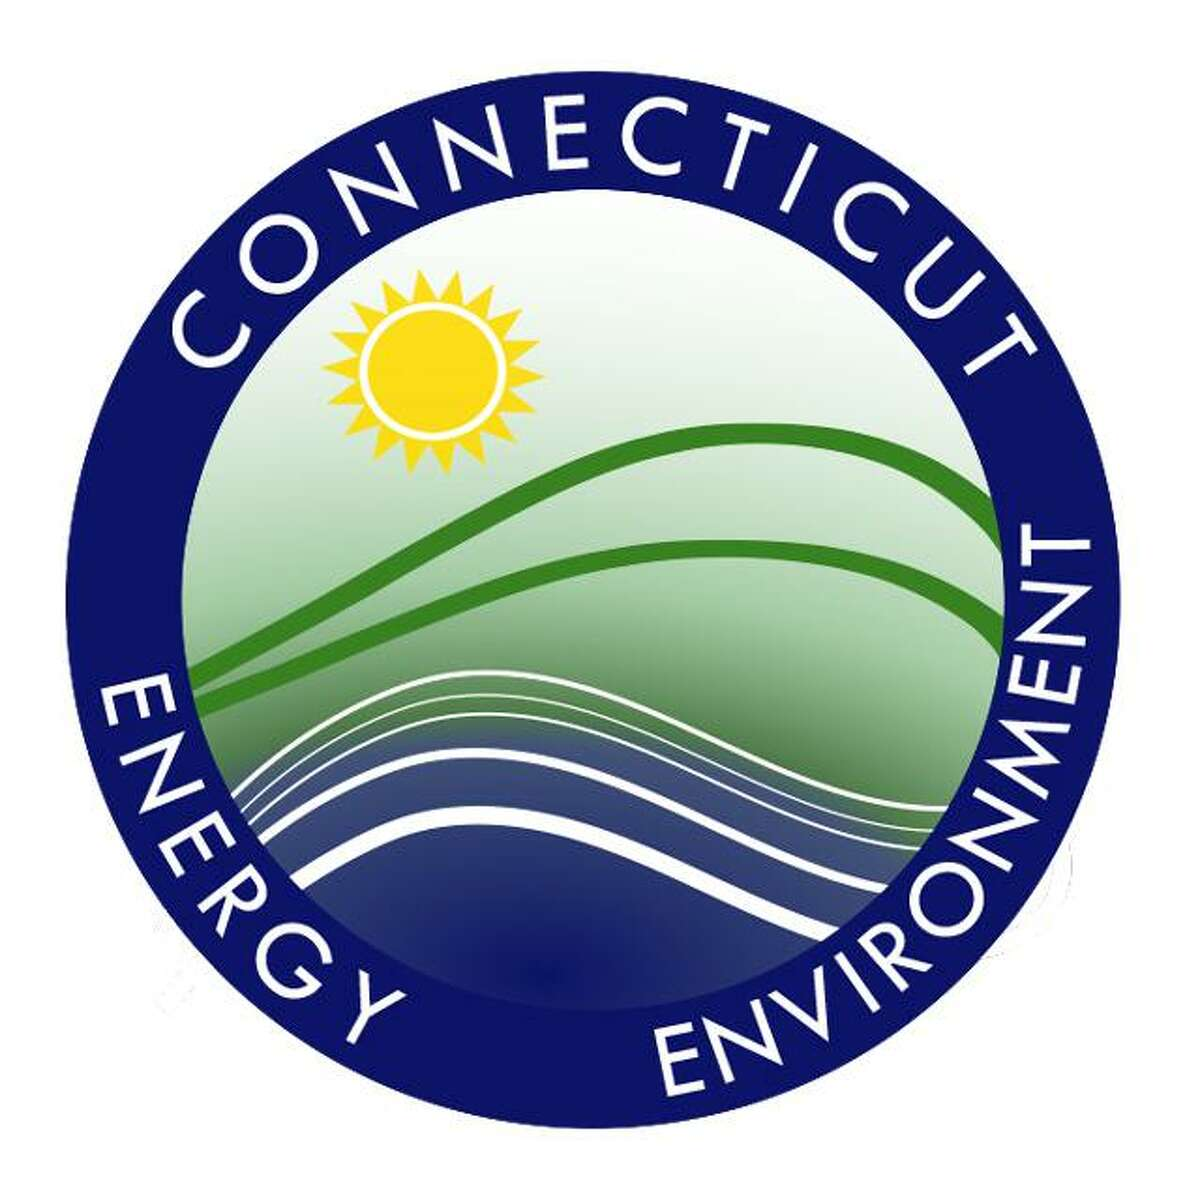 The Connecticut Department of Energy and Environmental Protection and RecycleCT Foundation have opened applications for the Lee Sawyer Community Waste Reduction and Recycling Grant.